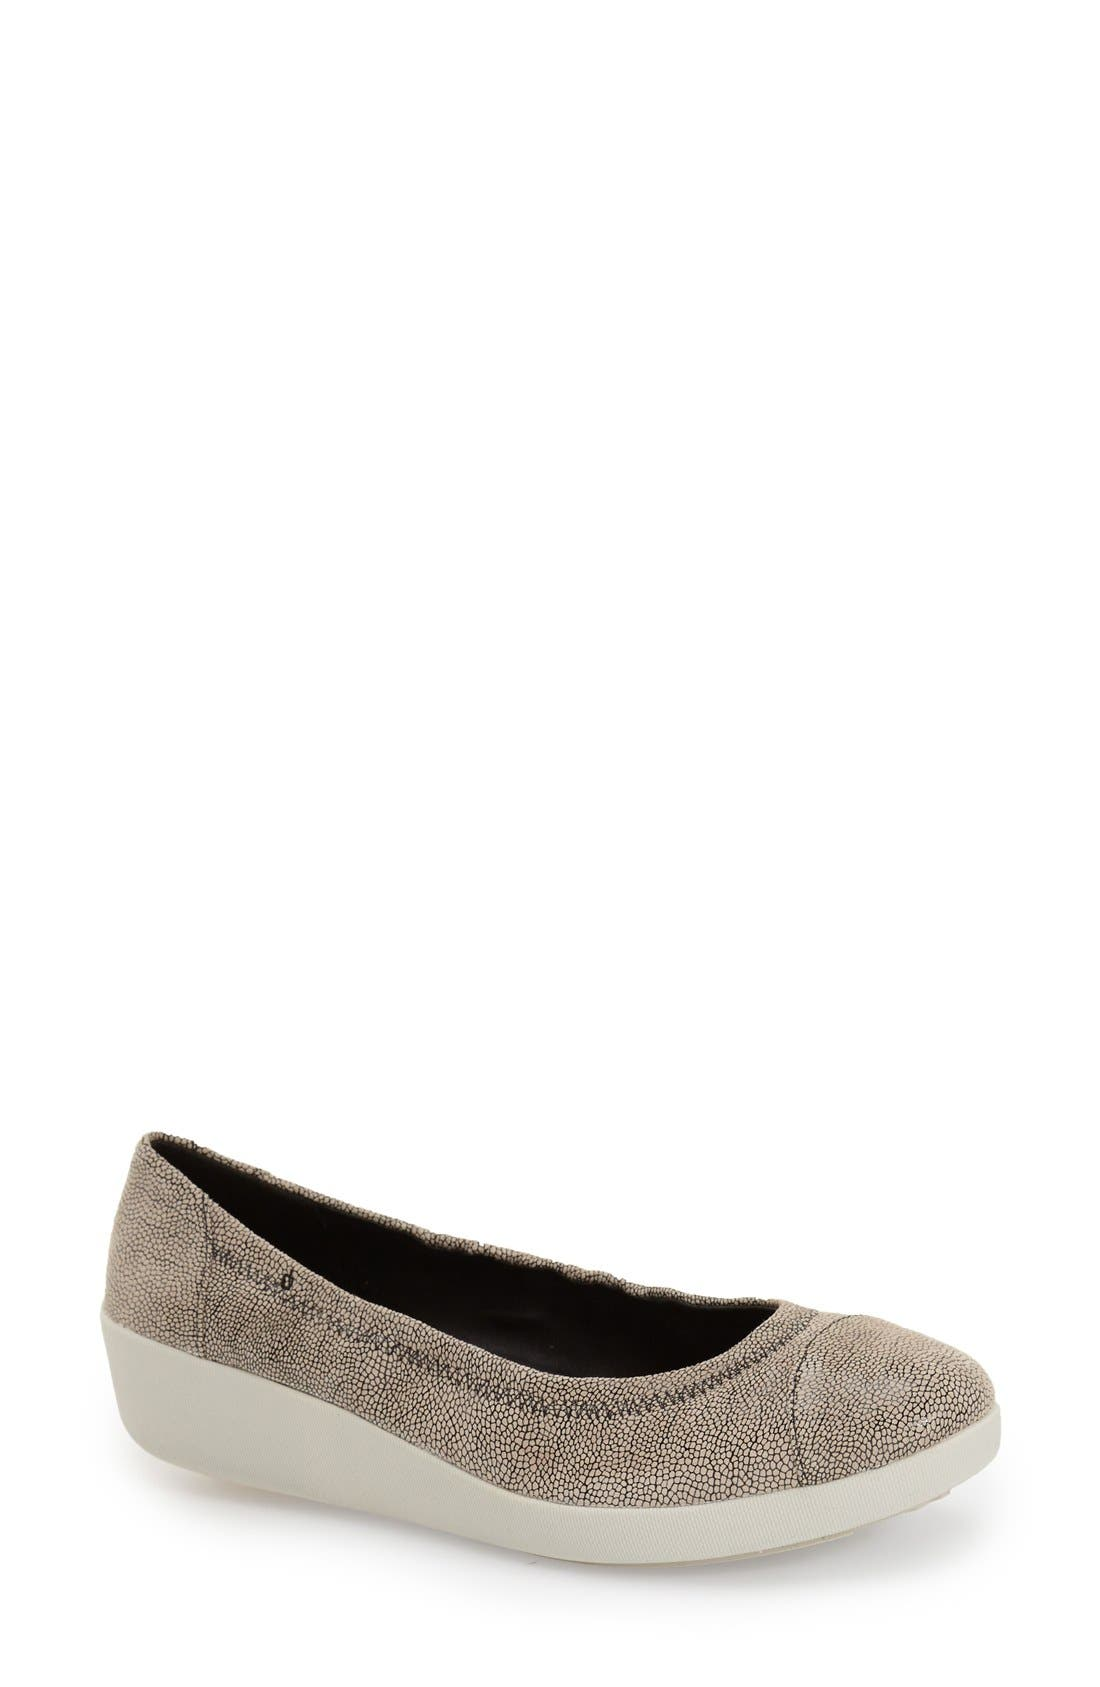 Main Image - FitFlop™ 'F-Pop' Leather Ballerina Flat (Women)